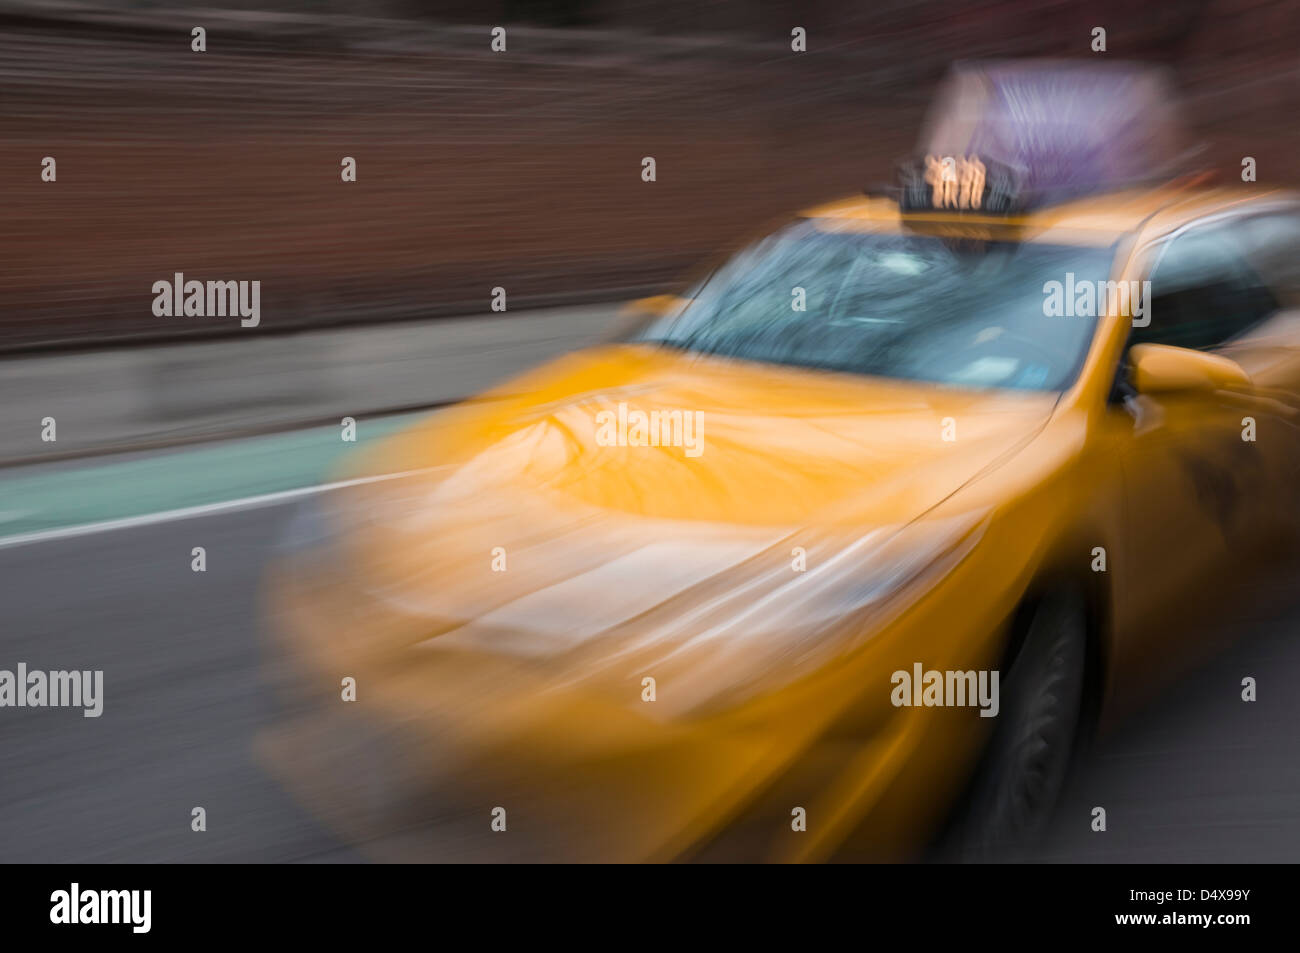 yellow-taxicab-blurred-to-show-movement-